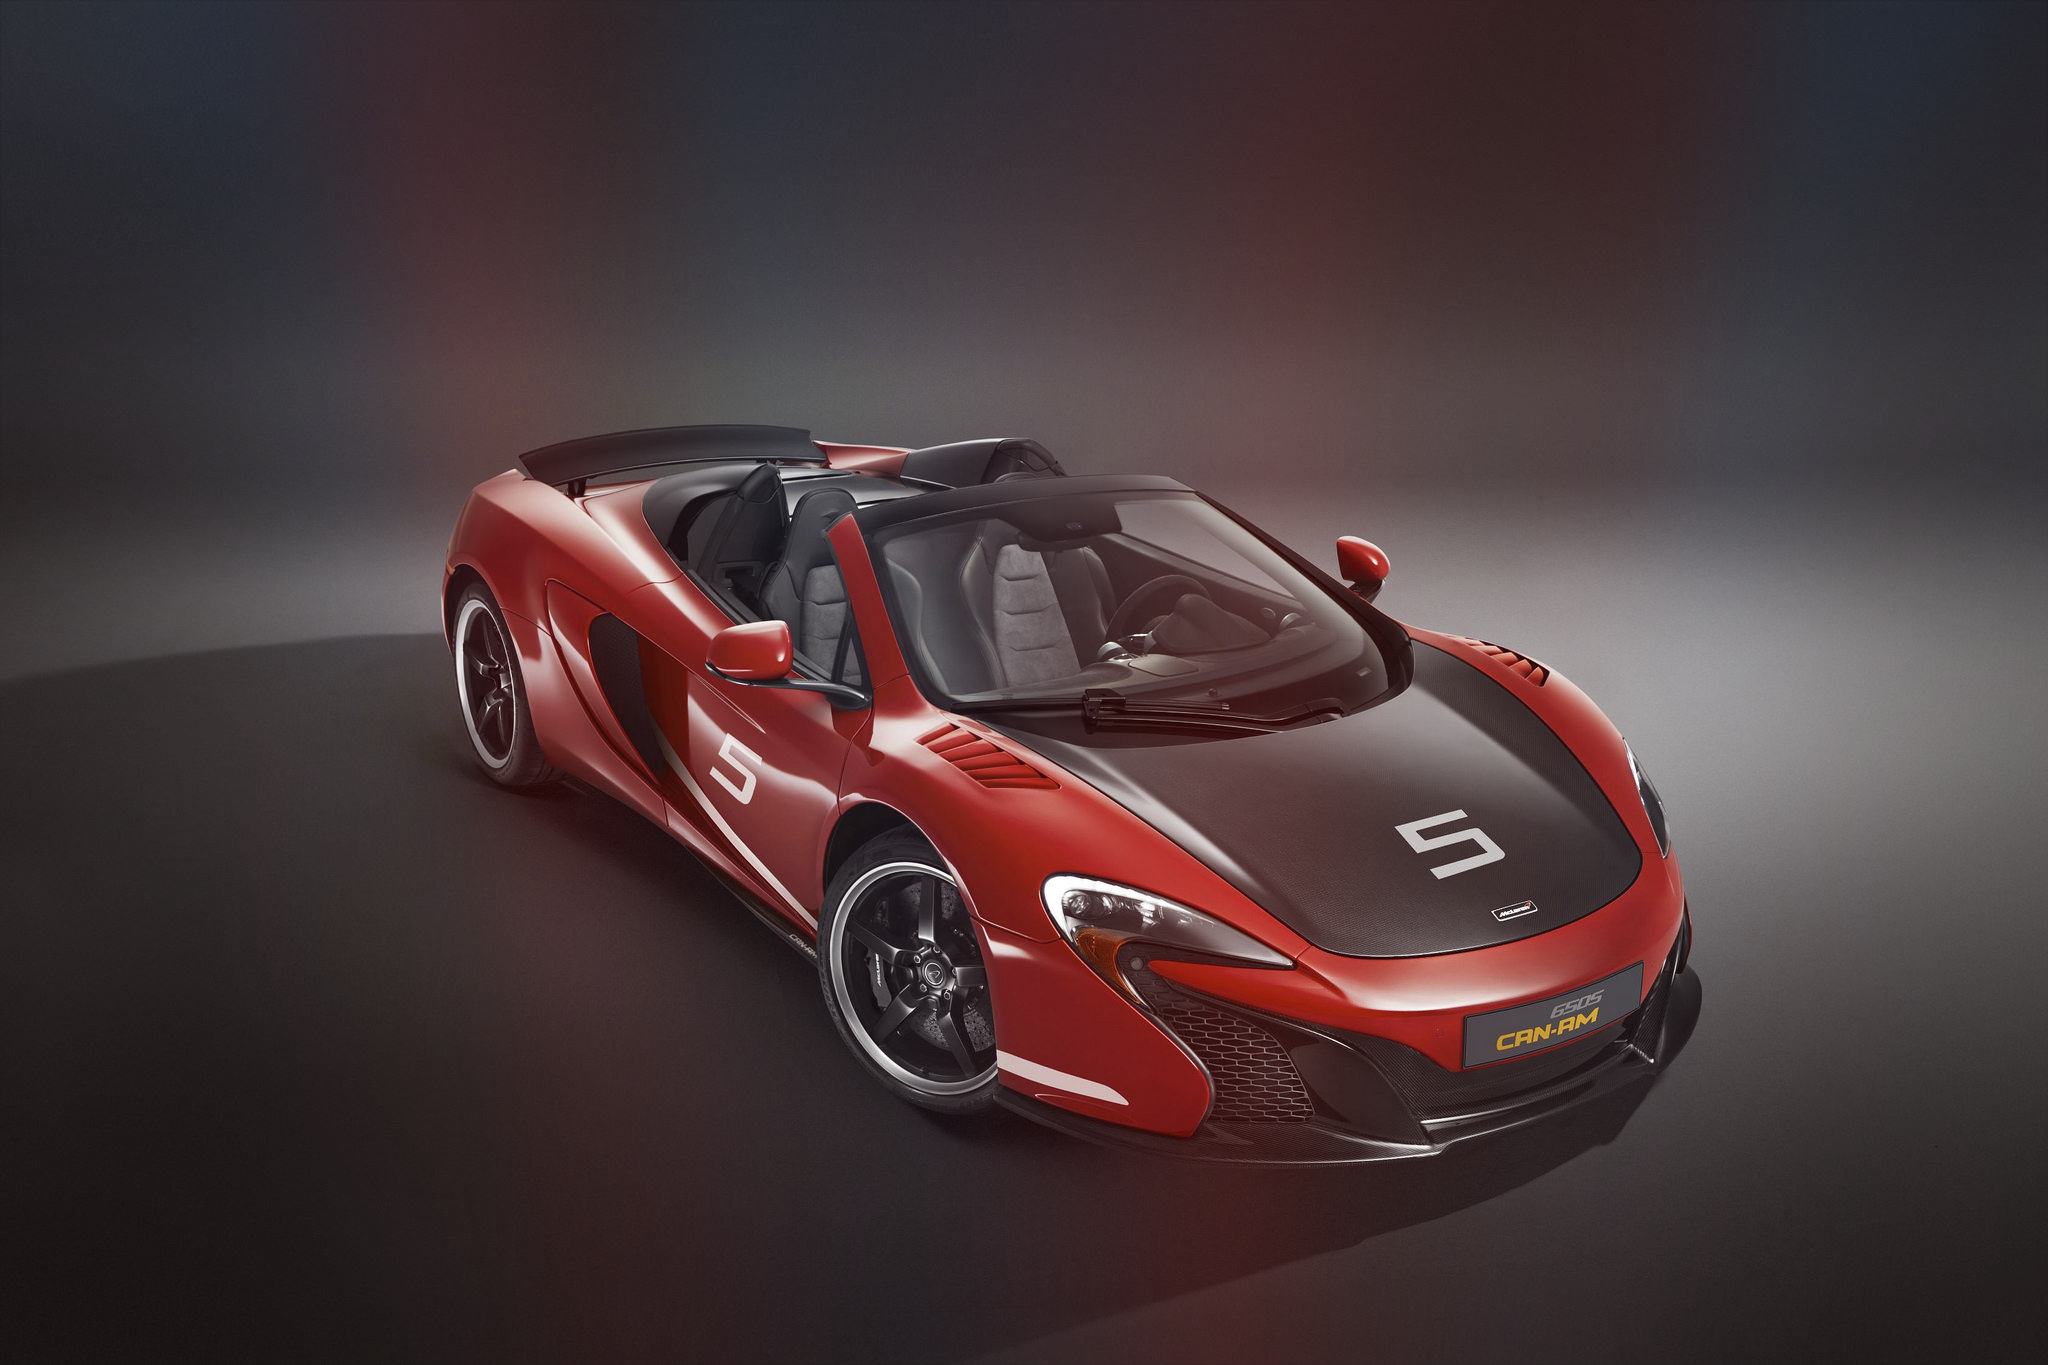 New McLaren 650S Can-Am Cars, Supercars, Awesome, Picture | World ...